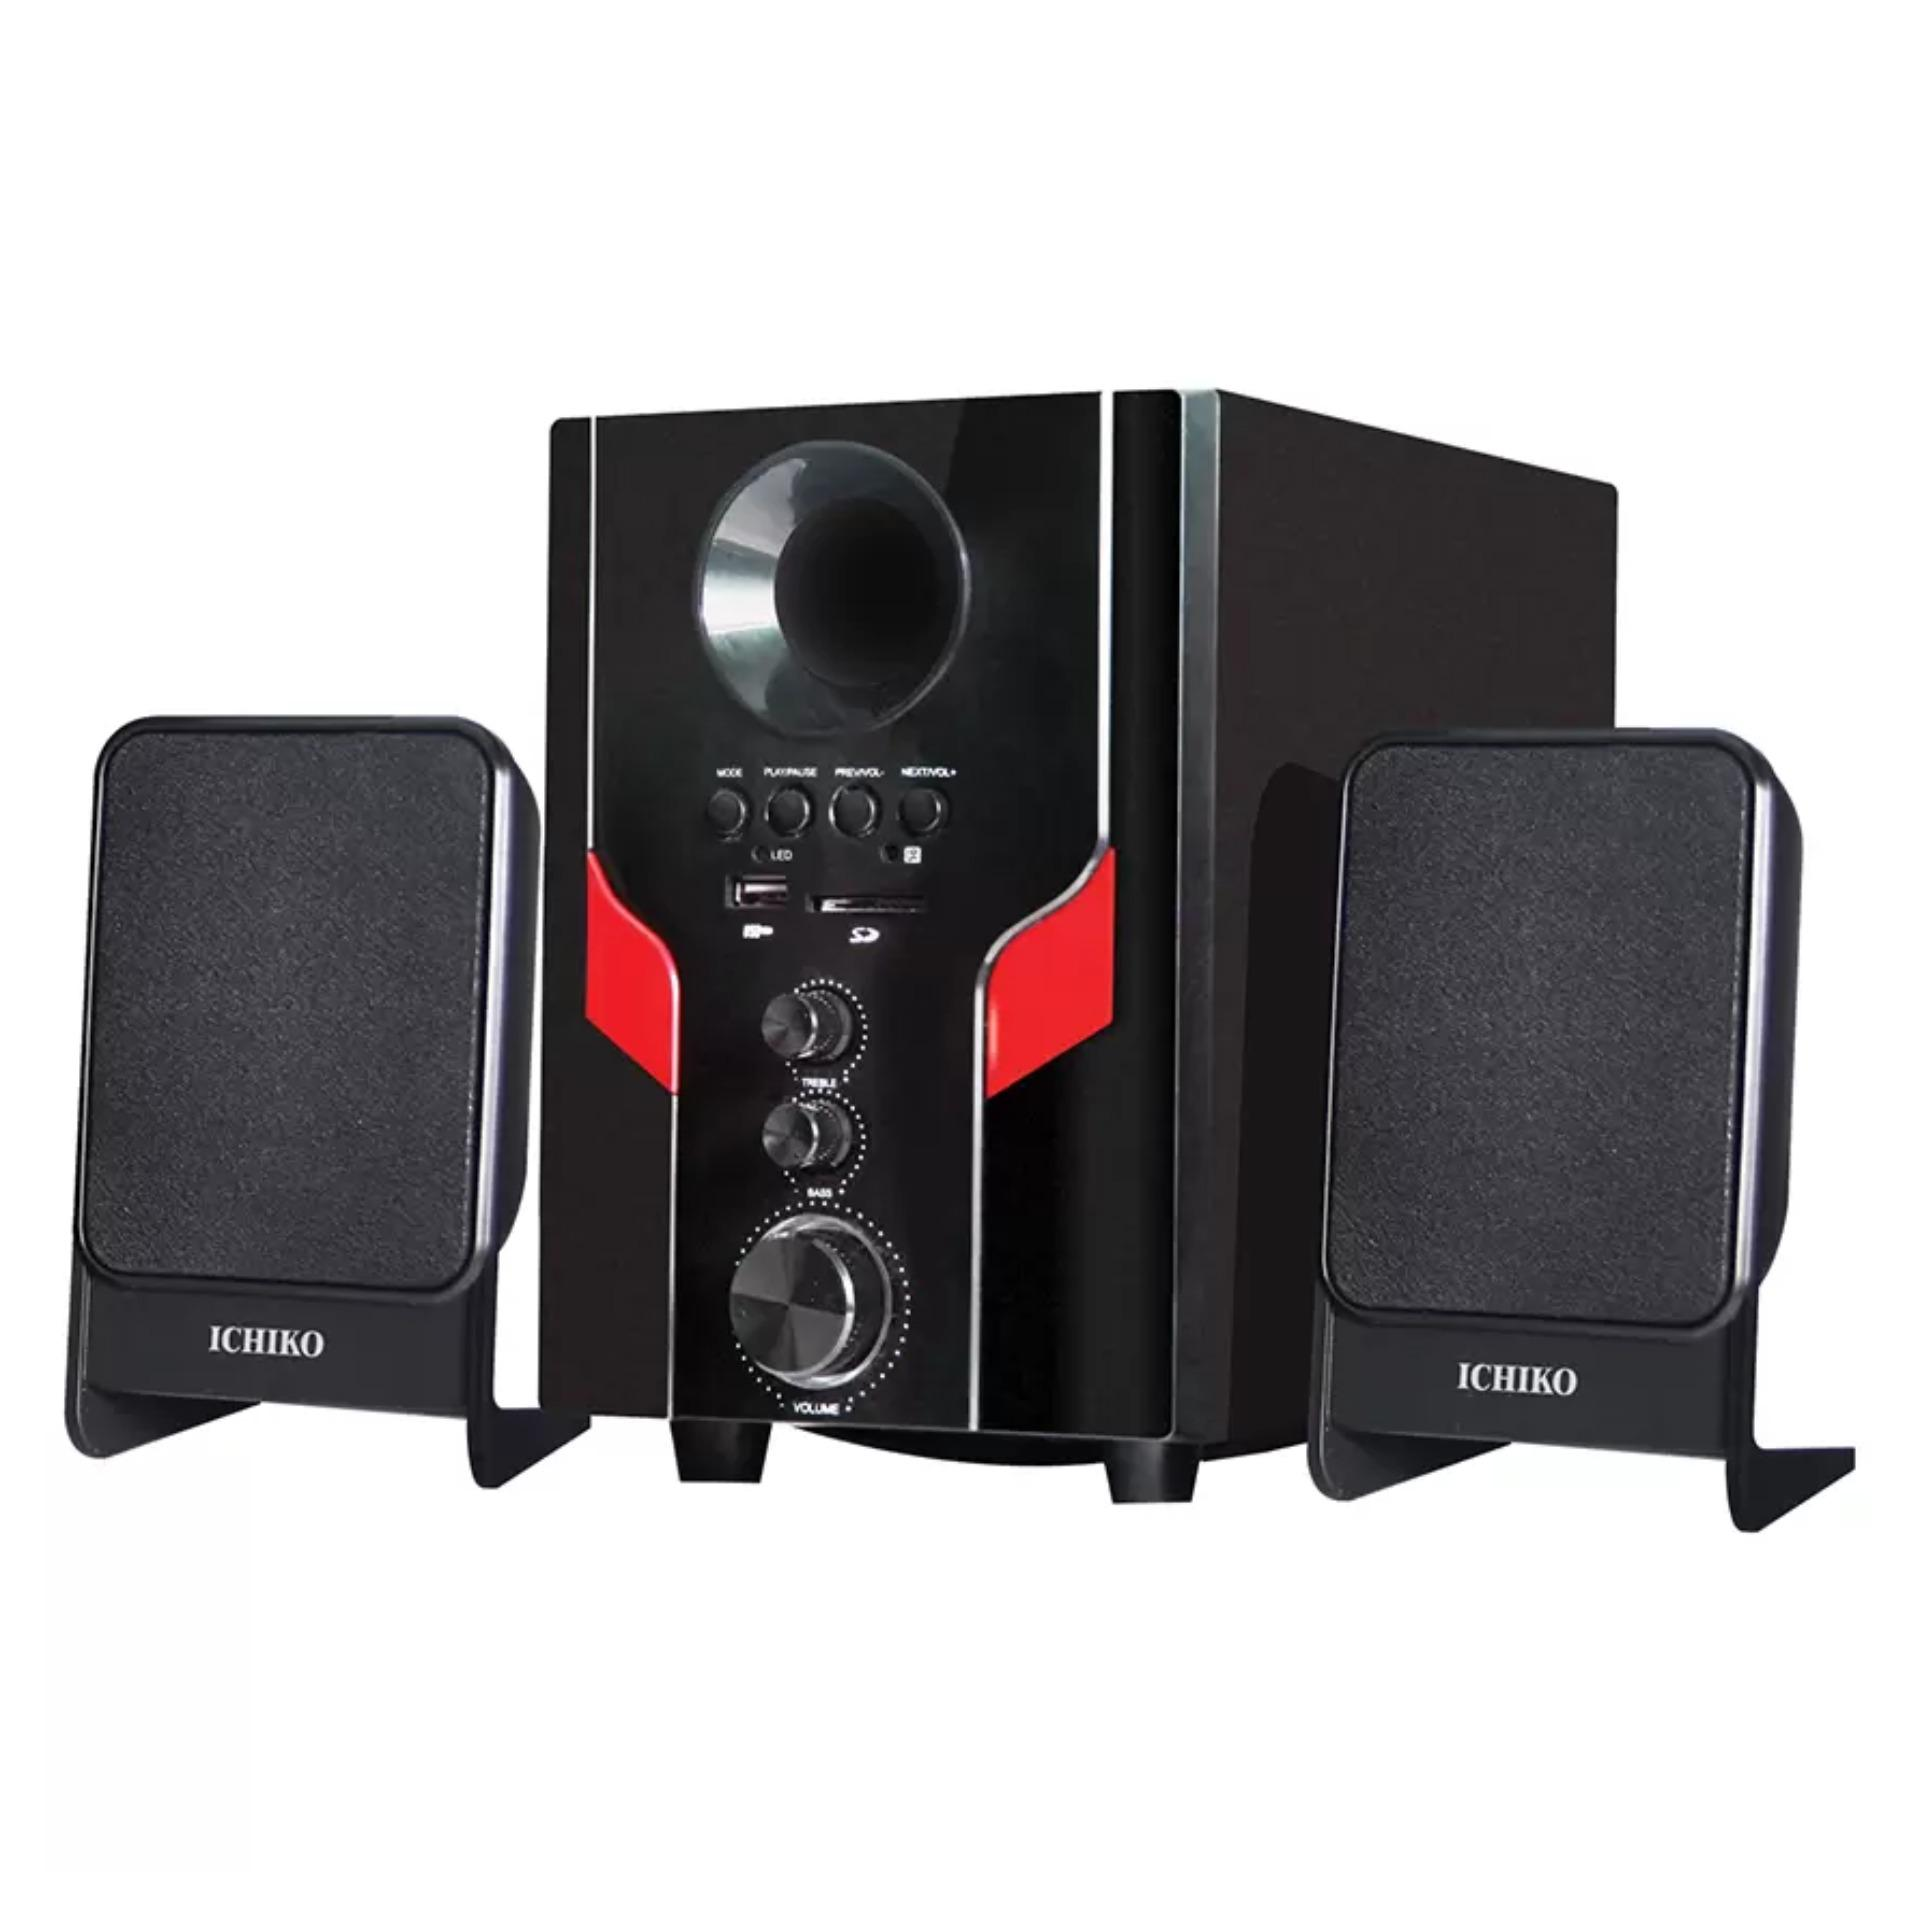 Diskon Ichiko Model As20 Multimedia Bluetooth Speaker Hitam Branded